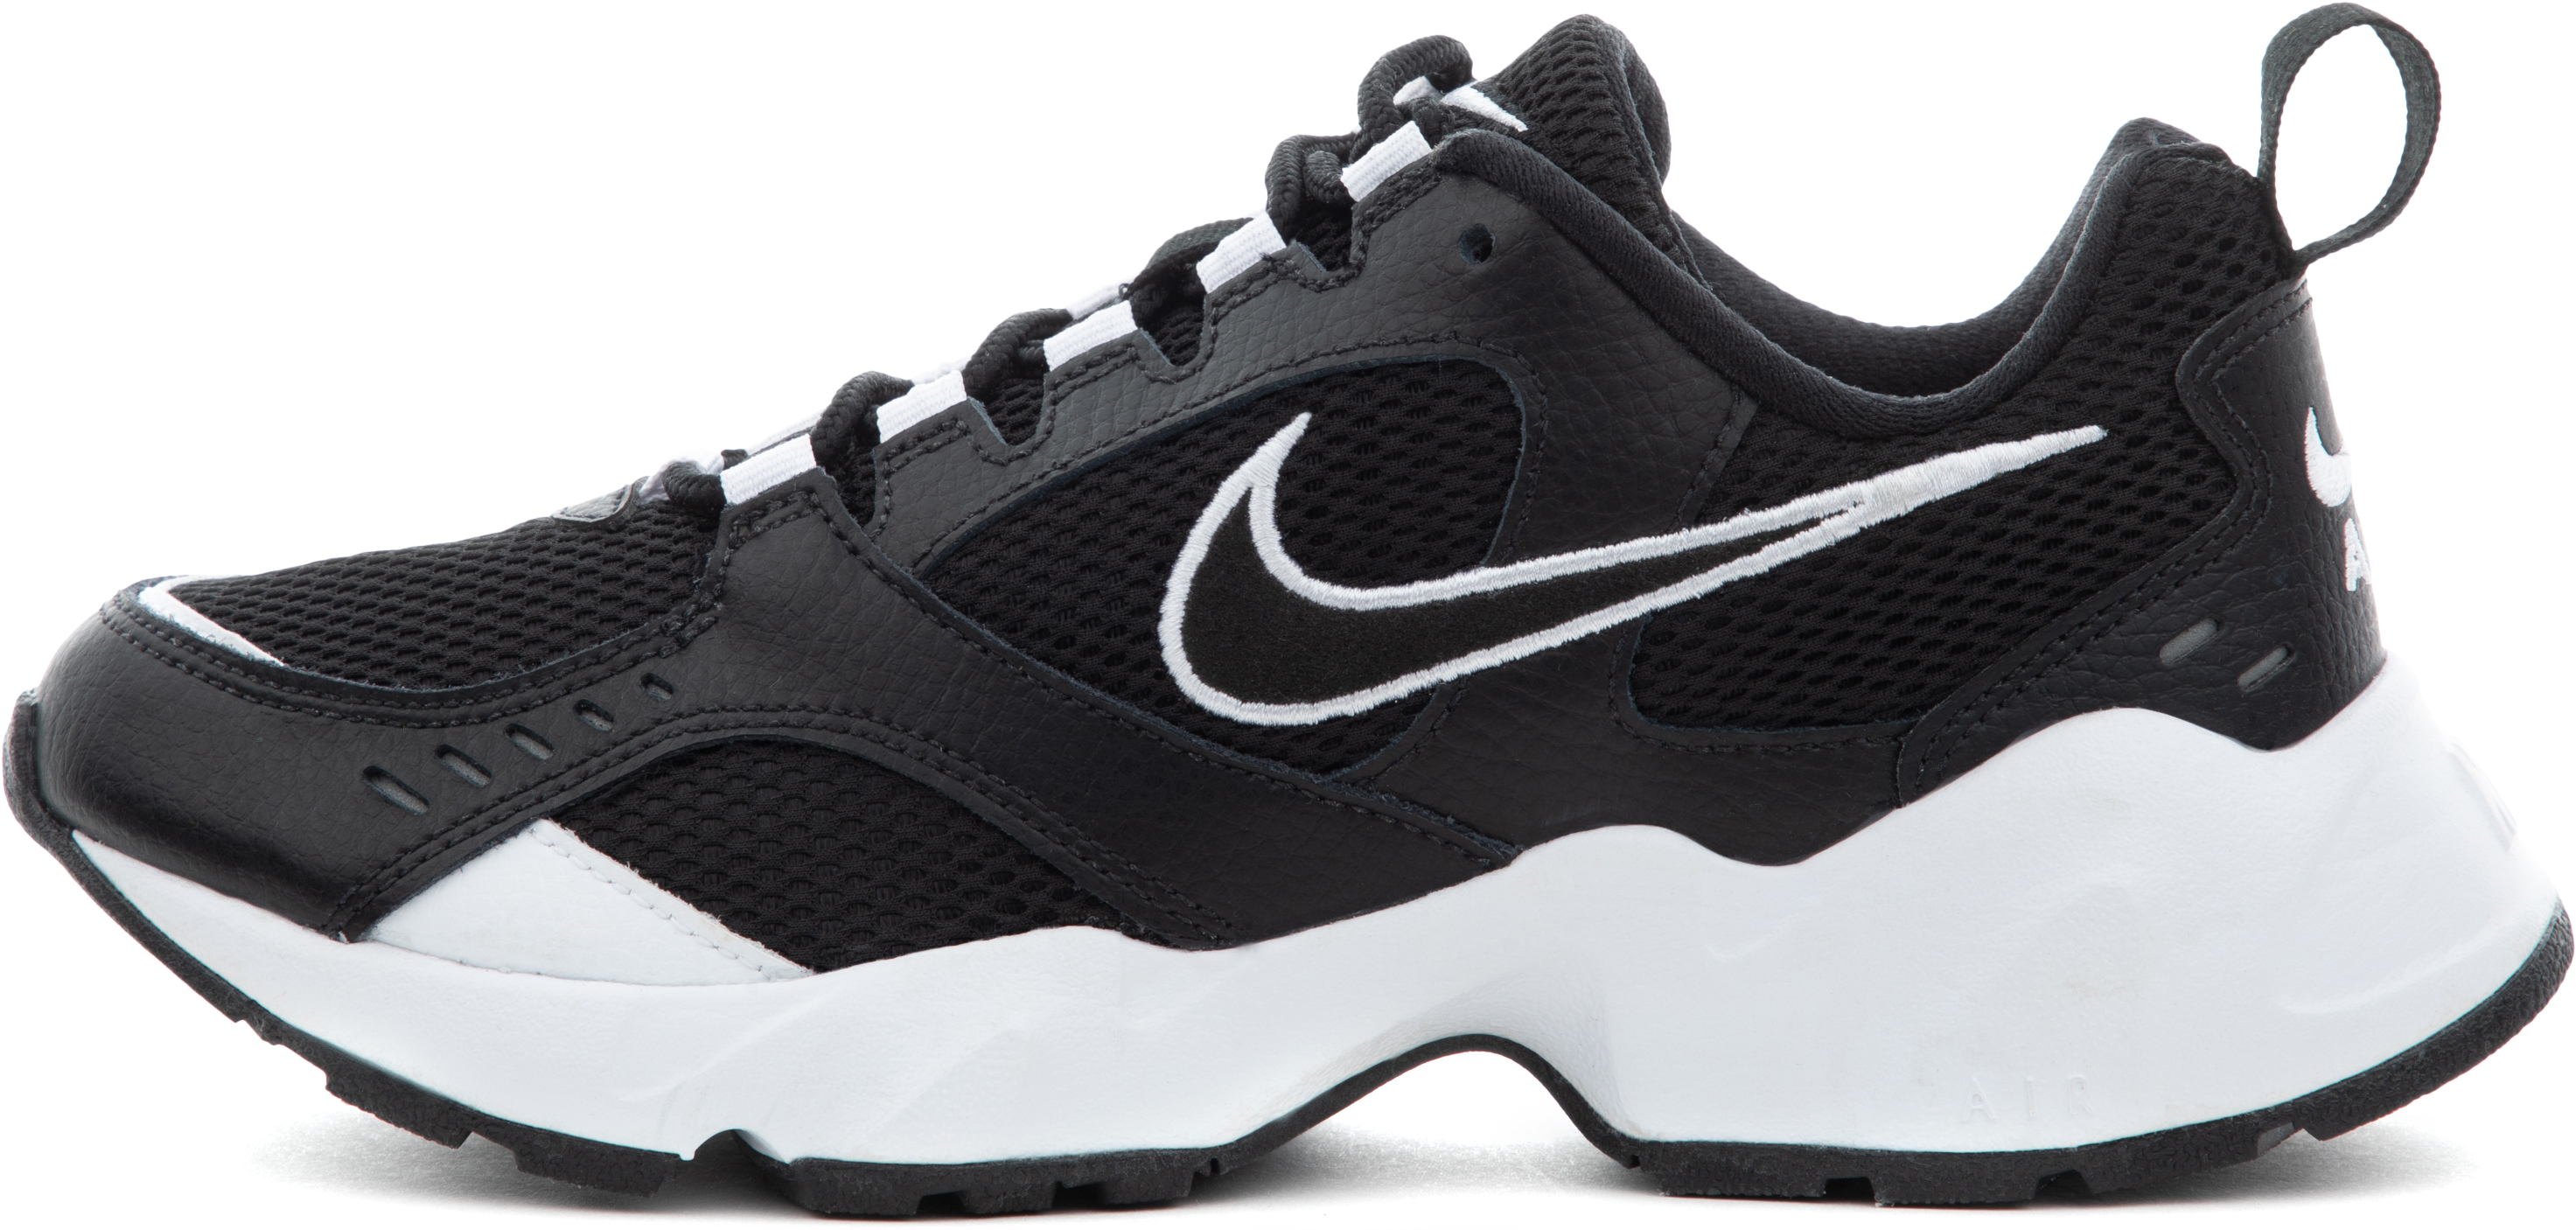 Nike Кроссовки женские Nike Air Heights, размер 39 nike кроссовки женские nike tanjun racer размер 39 5